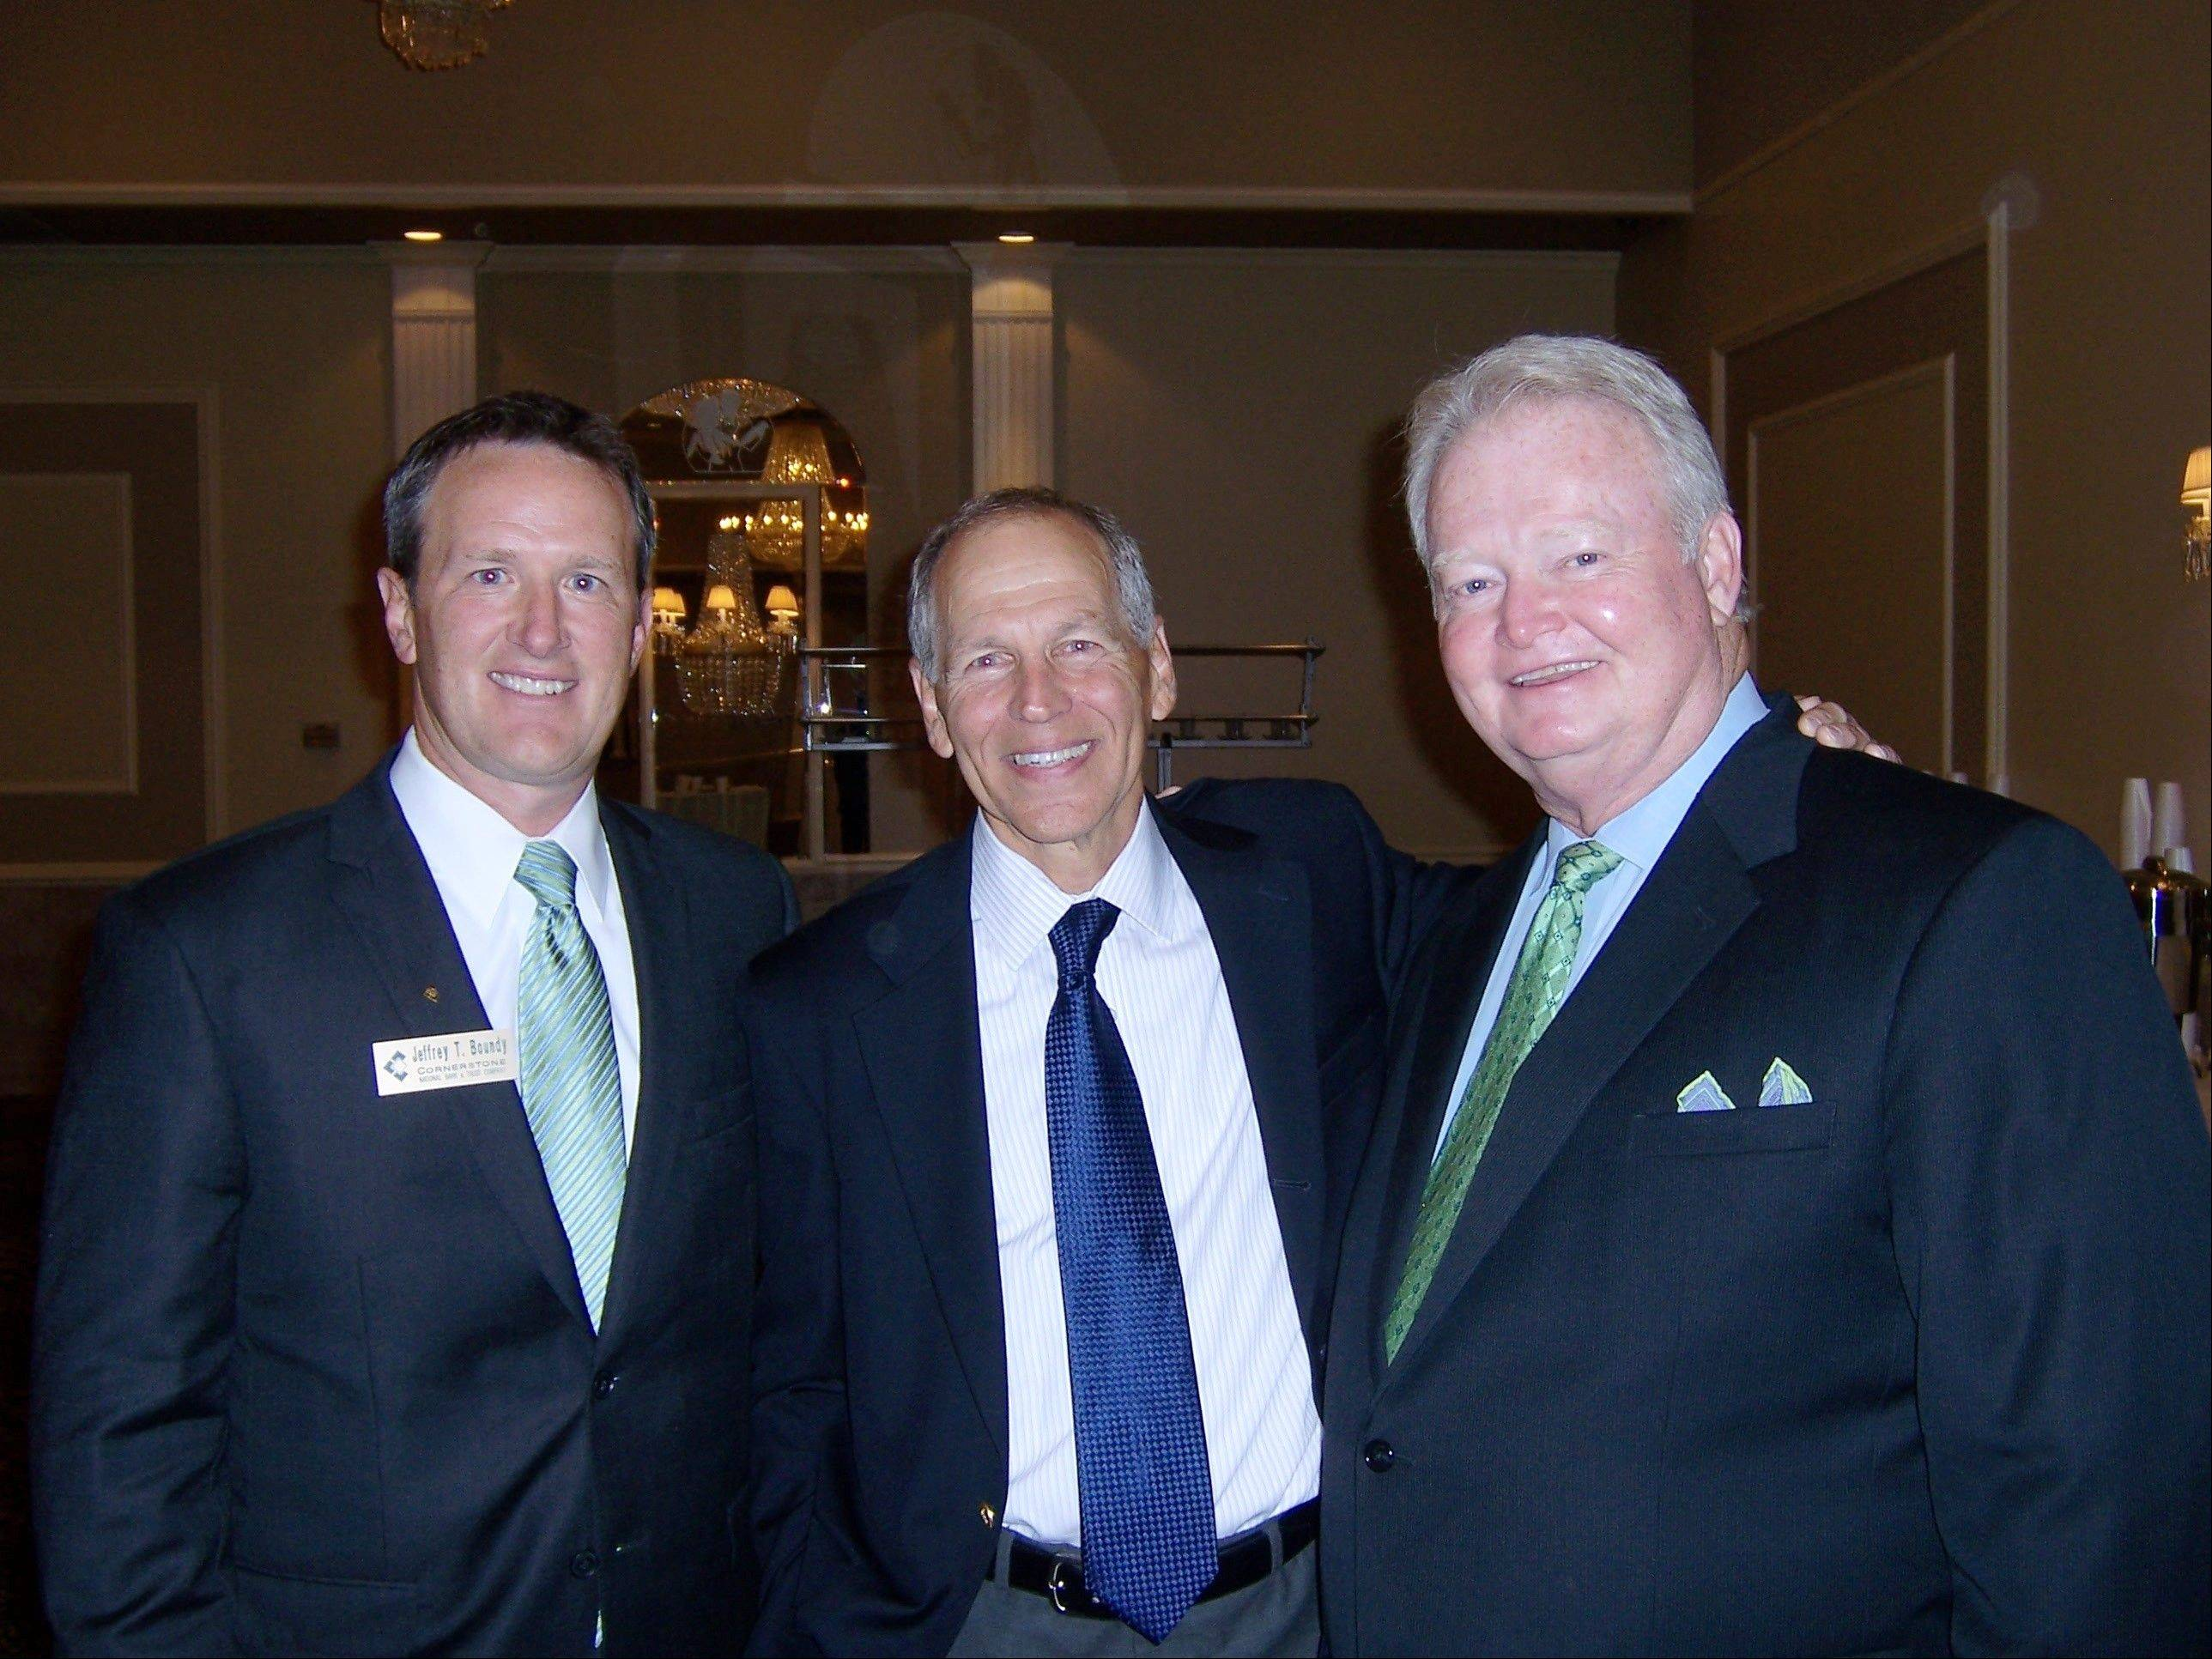 Jeff Boundy, left, president and senior lender at Cornerstone National Bank & Trust Company, economist Robert Genetski and Tom MacCarthy, chairman and CEO at Cornerstone, were part of Thursday�s 10th annual economic forecast held in Palatine.